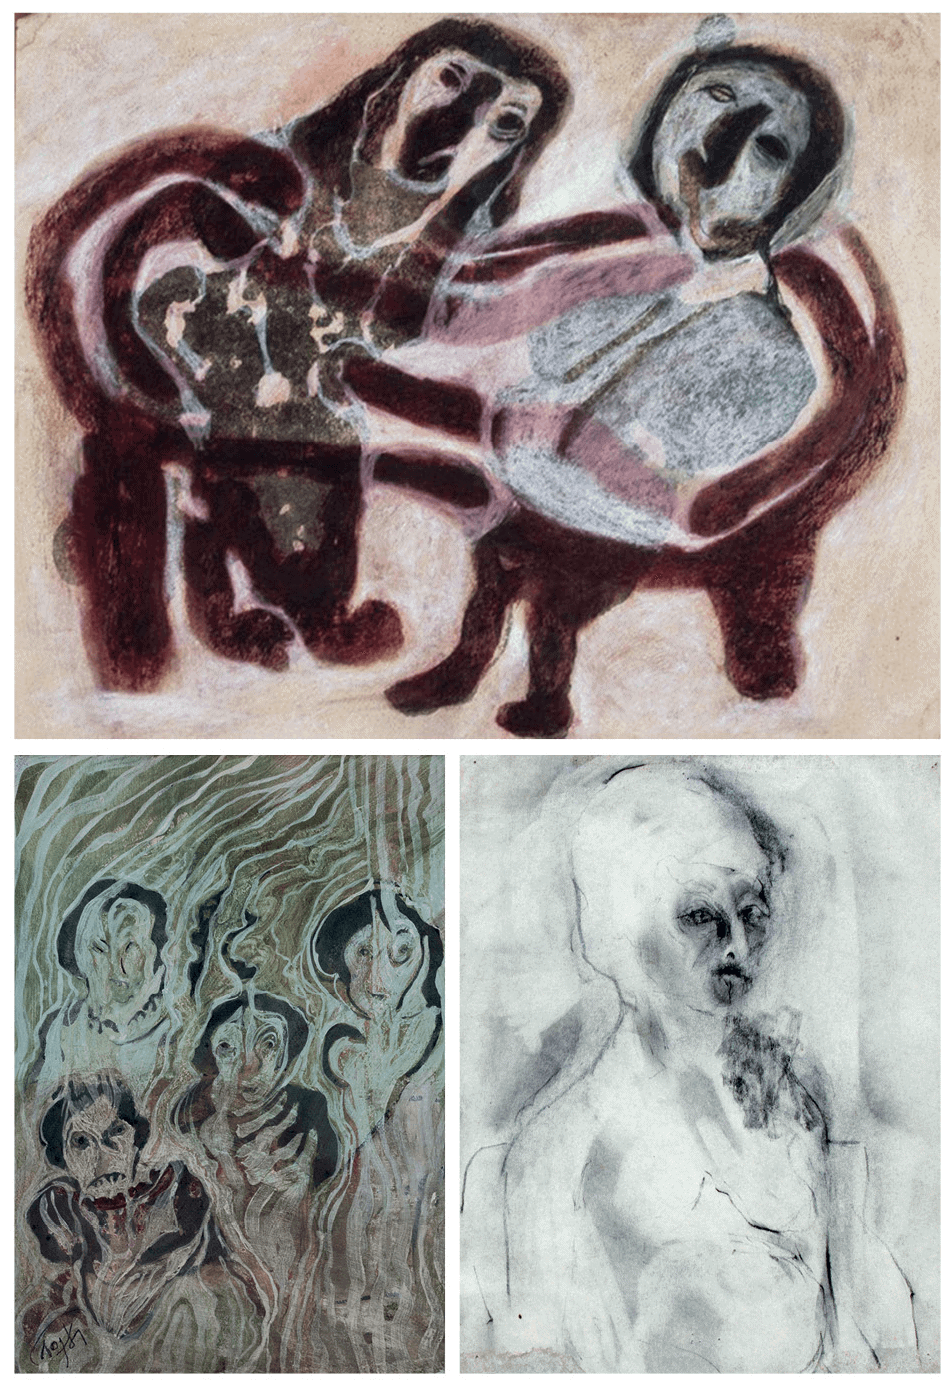 CLOCKWISE FROM TOP: Kamala Ishaq Ibrahim, Untitled VI, 1969. Mixed media on paper, 25 x 31.5cm. Untitled II, undated. Charcoal on paper, 22 x 27.5cm. Untitled VIII, 1970. Water colour on paper, 25 x 17.5cm. All images courtesy of Circle Art Gallery.